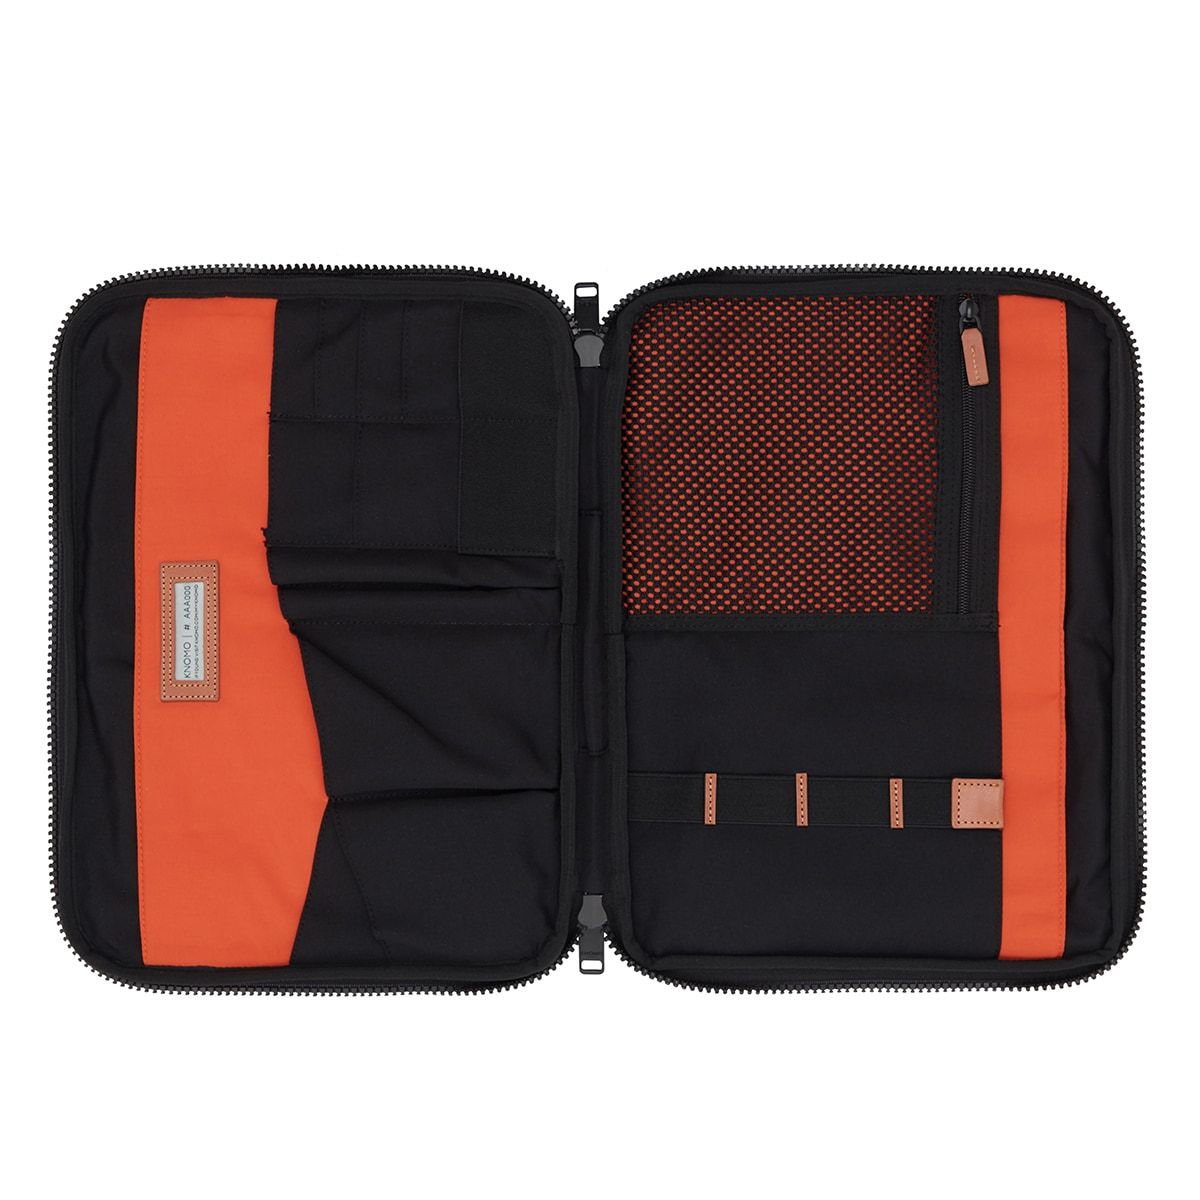 "Fulham Knomad X-Body Organiser Tech Organiser for Work - 13"" -  13""  